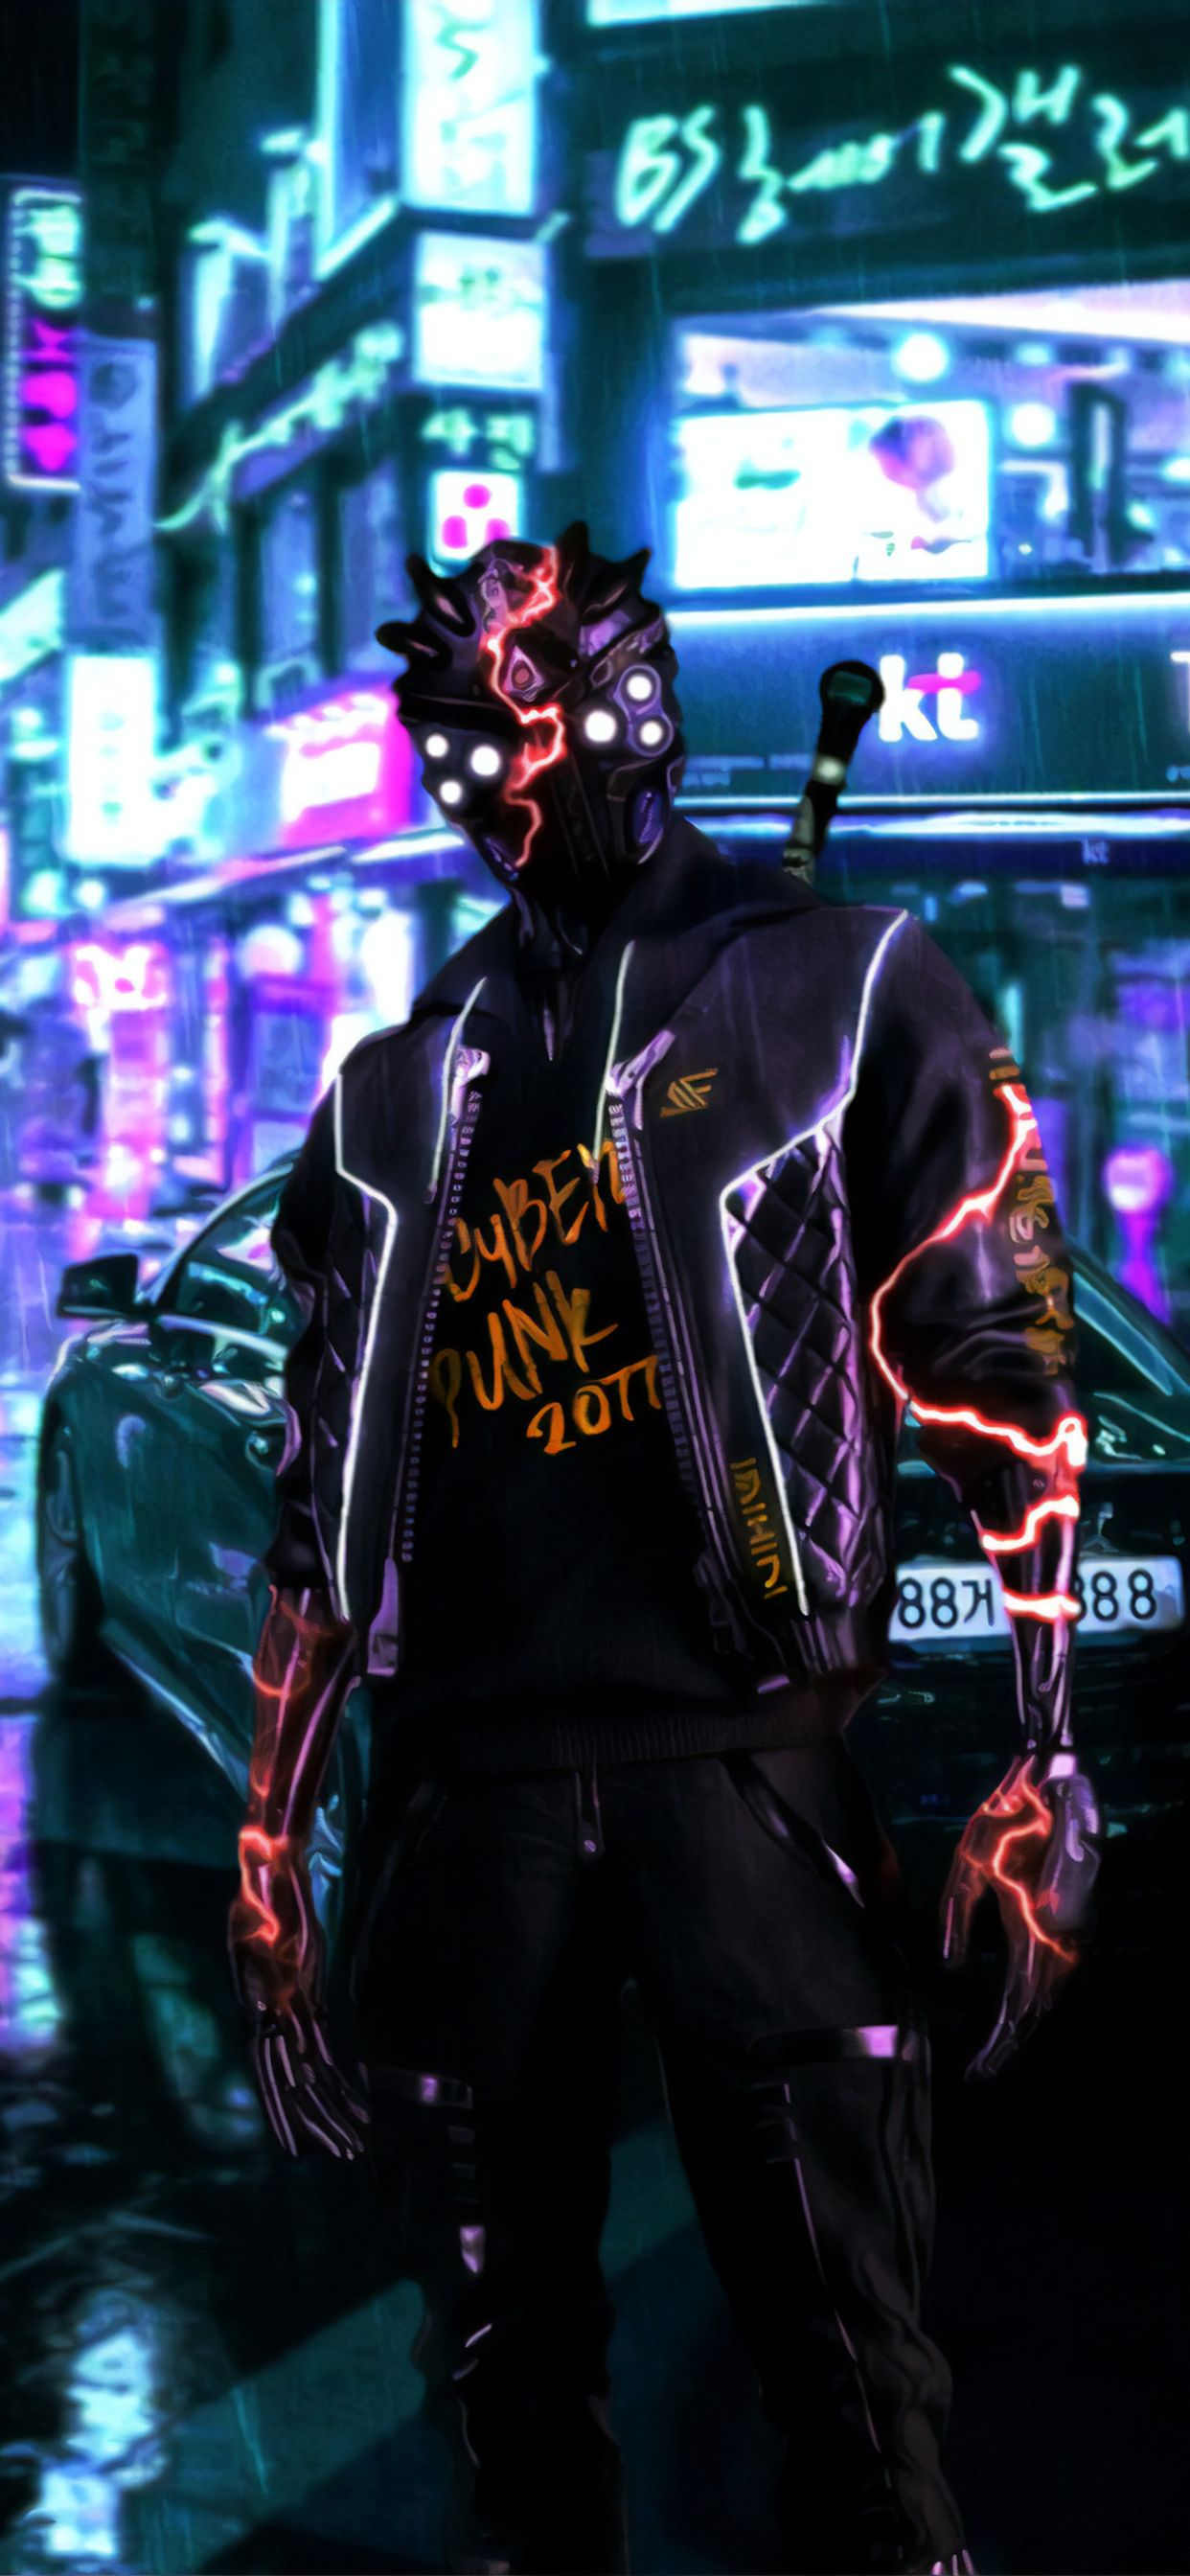 Cyberpunk 2077 Iphone Wallpapers Wallpaper Cave